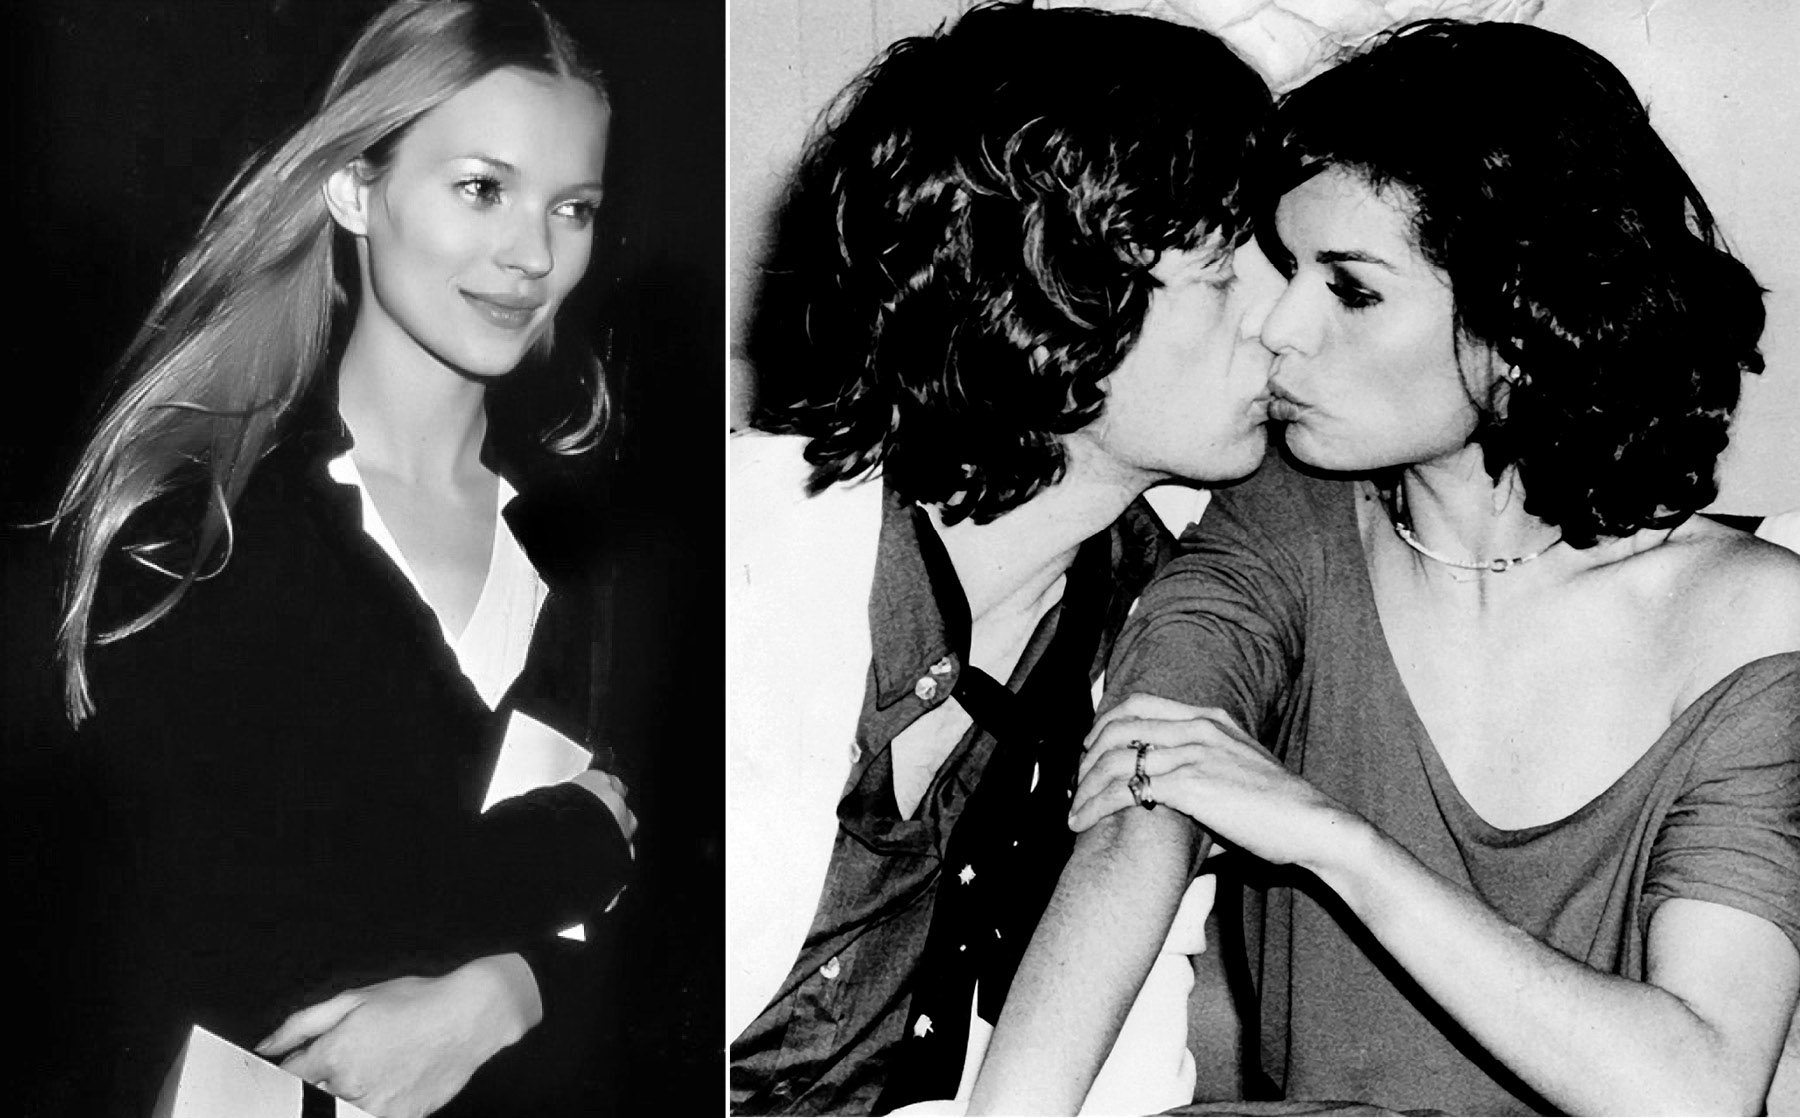 Spirit-&-Flesh-Magazine_LA-VIE-EN-ROSE_Kate-Moss_Mick-&-Bianca-JAgger_by_Rose-Hartman_3